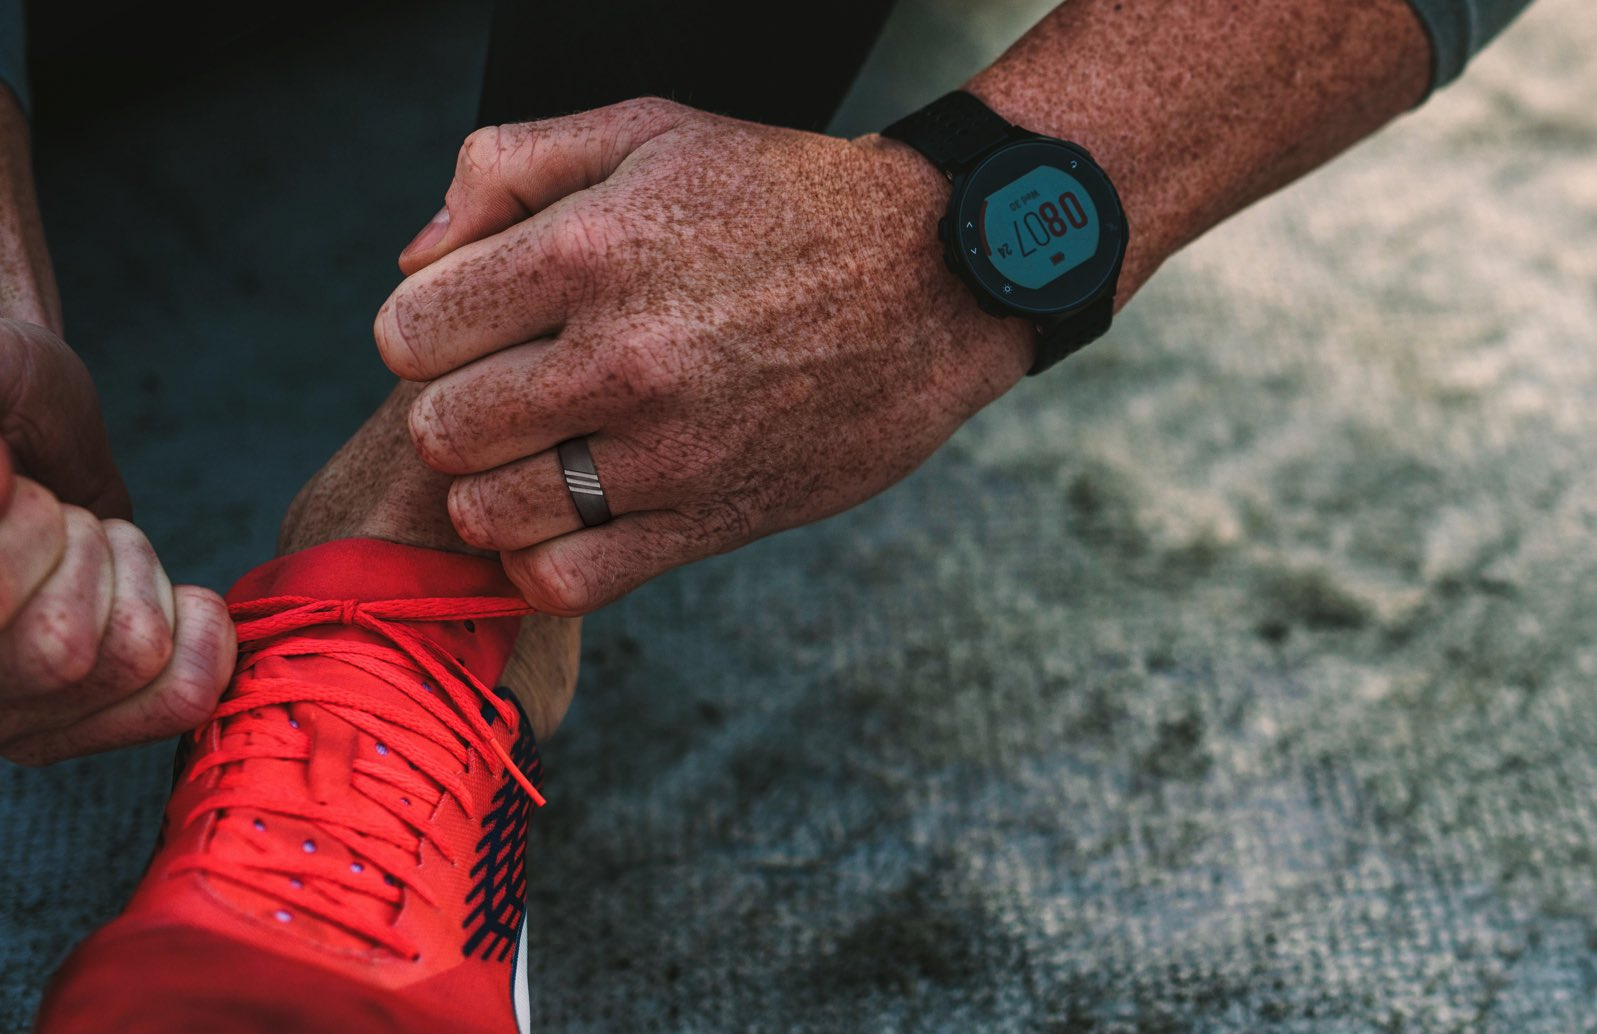 runner wearing livering silicone ring